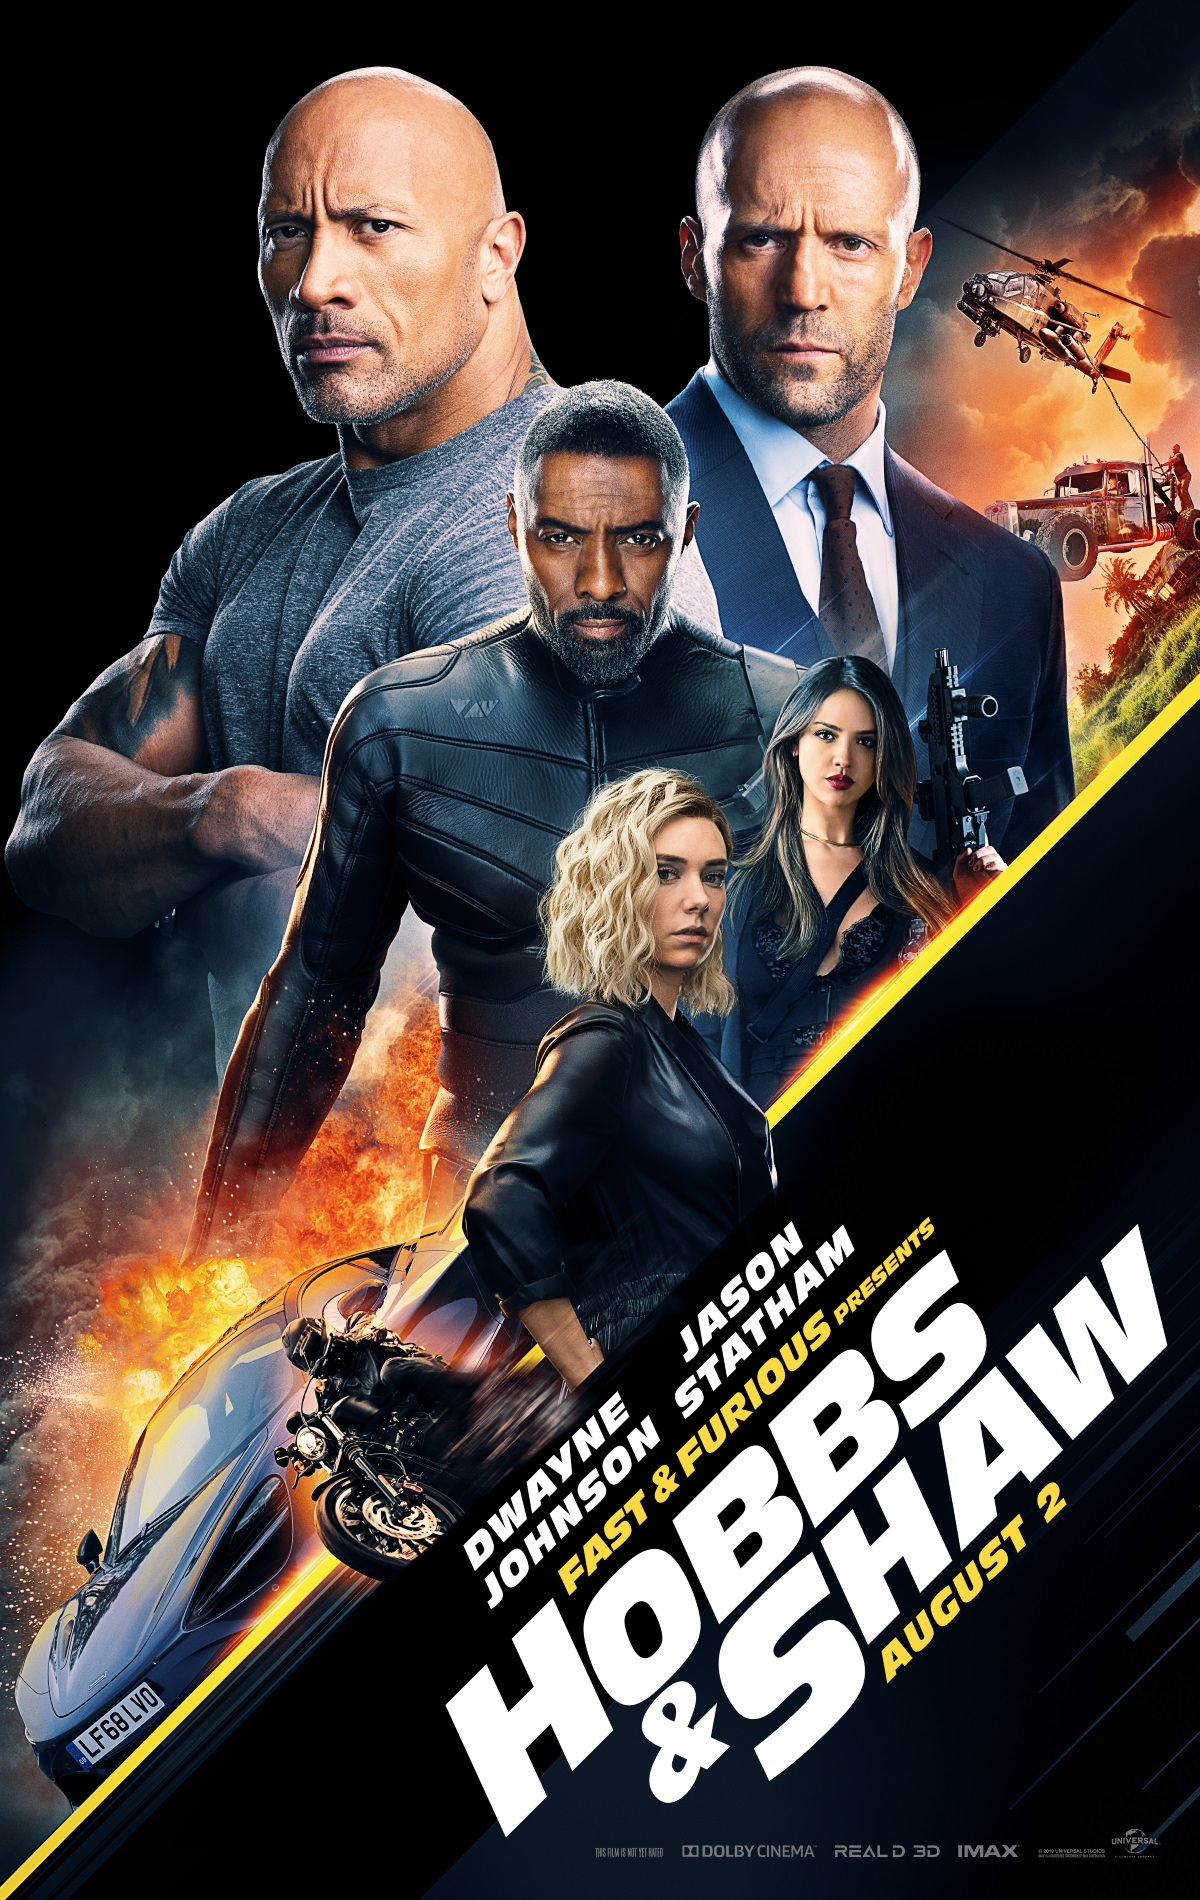 hobbs and shaw poster Hobbs and Shaw poster